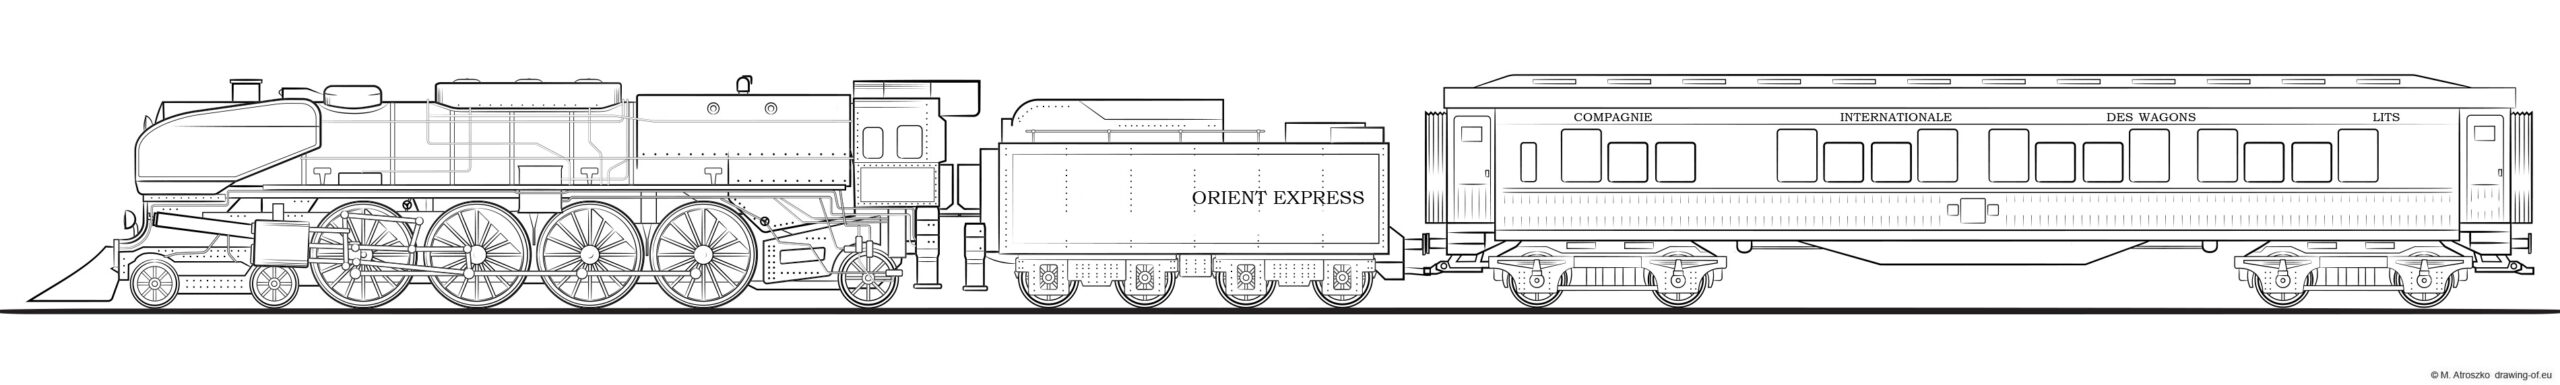 Orient express train drawing